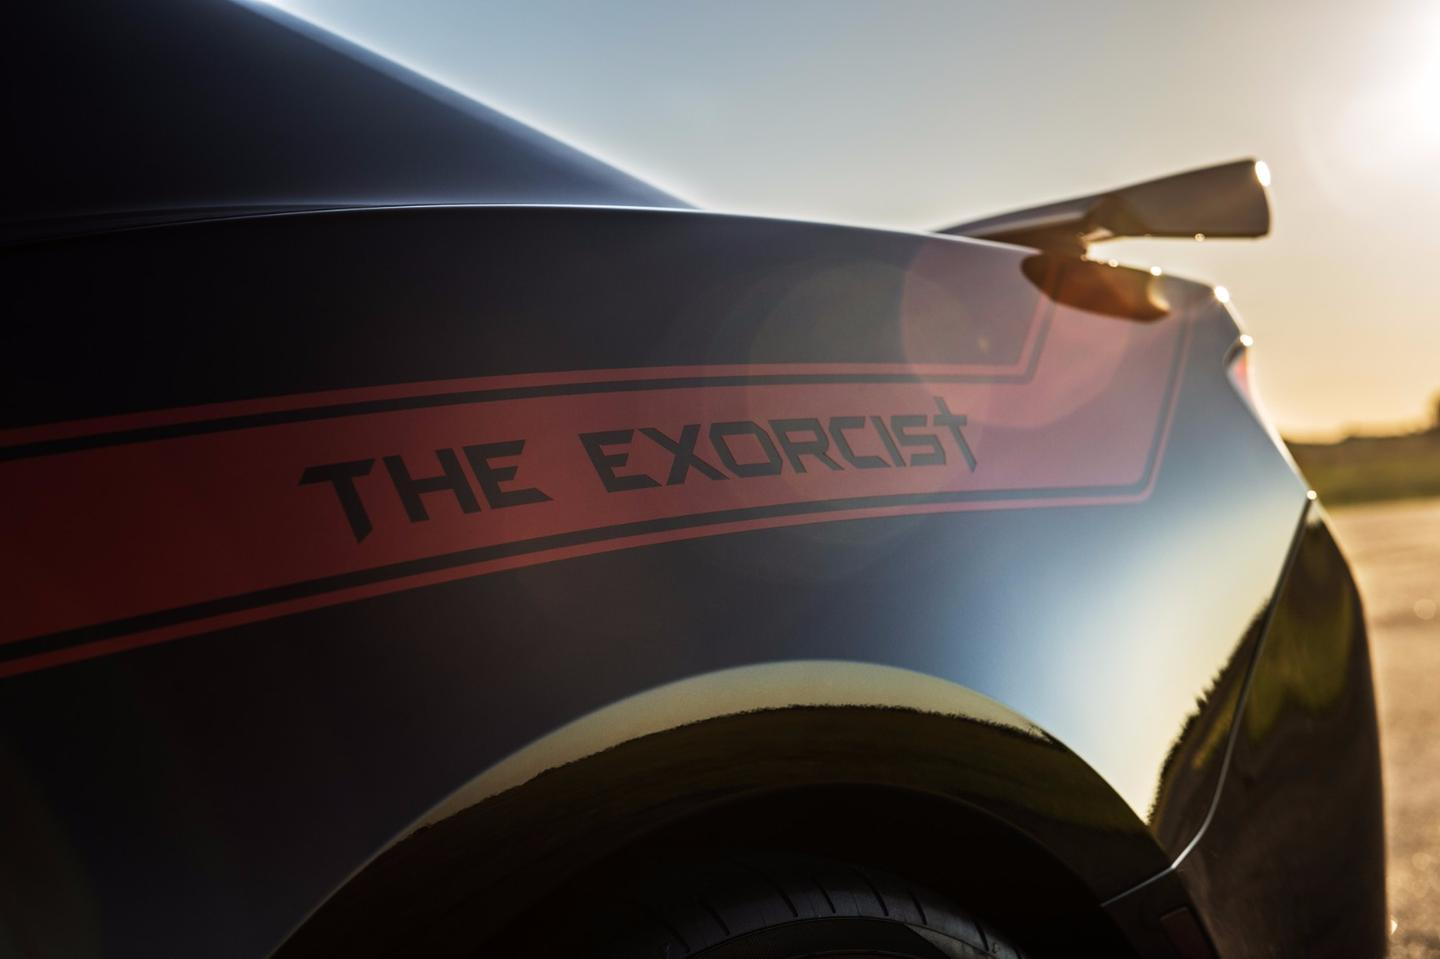 The Exorcist is aimed directly at the Dodge Demon